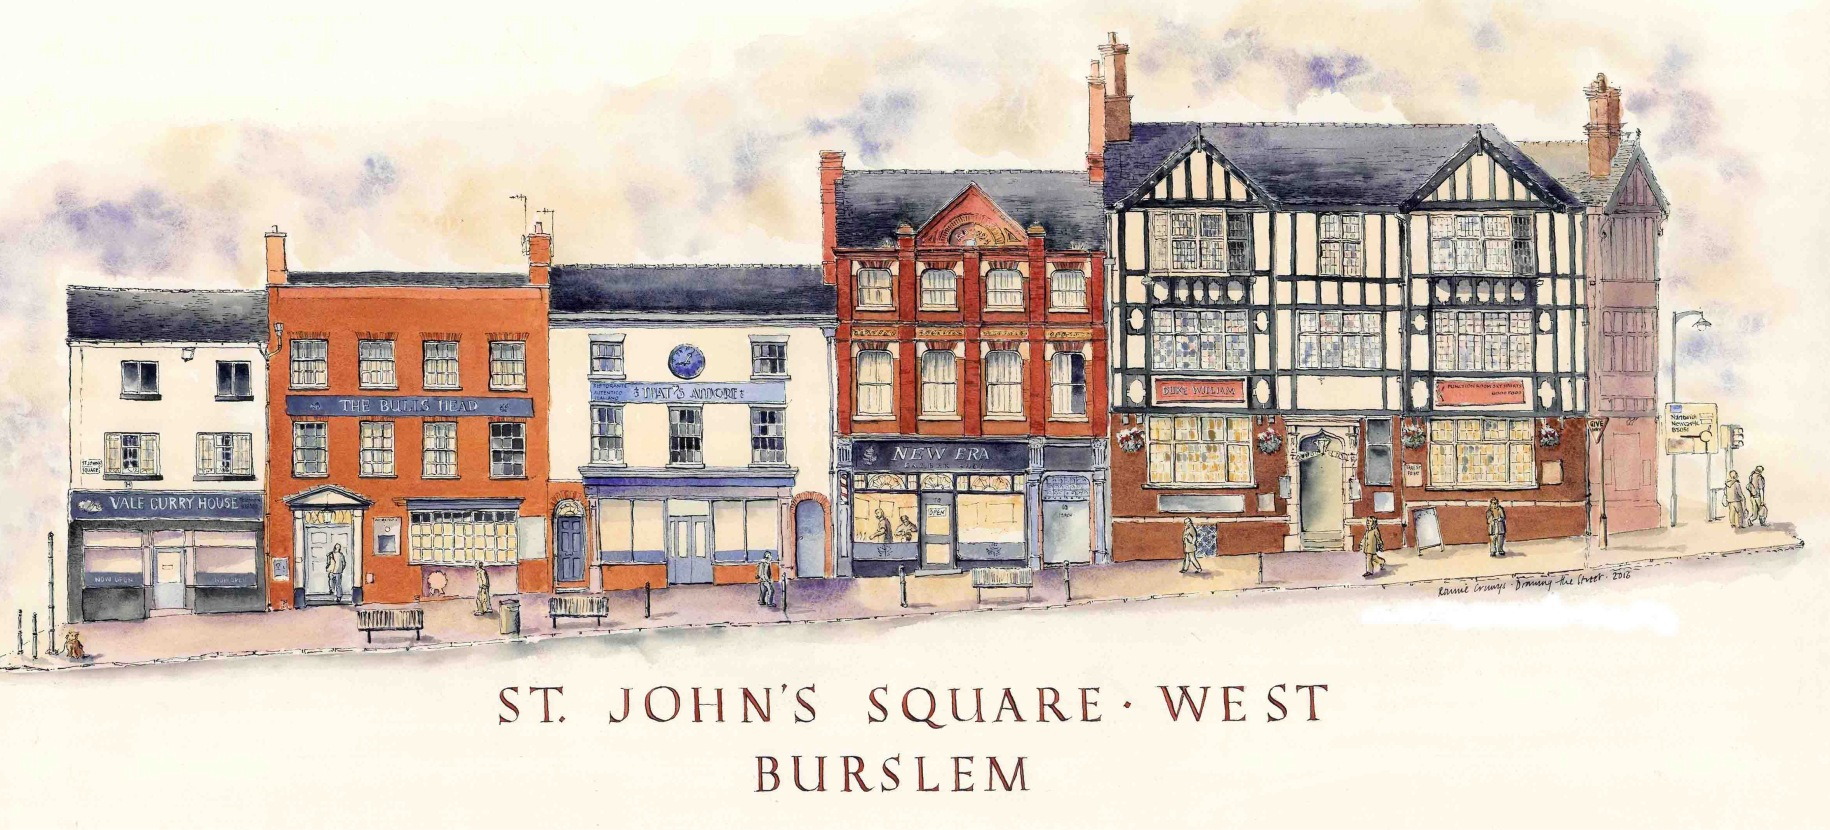 St. John's Square West in Burslem, Staffordshire, England. By Ronnie Cruwys.